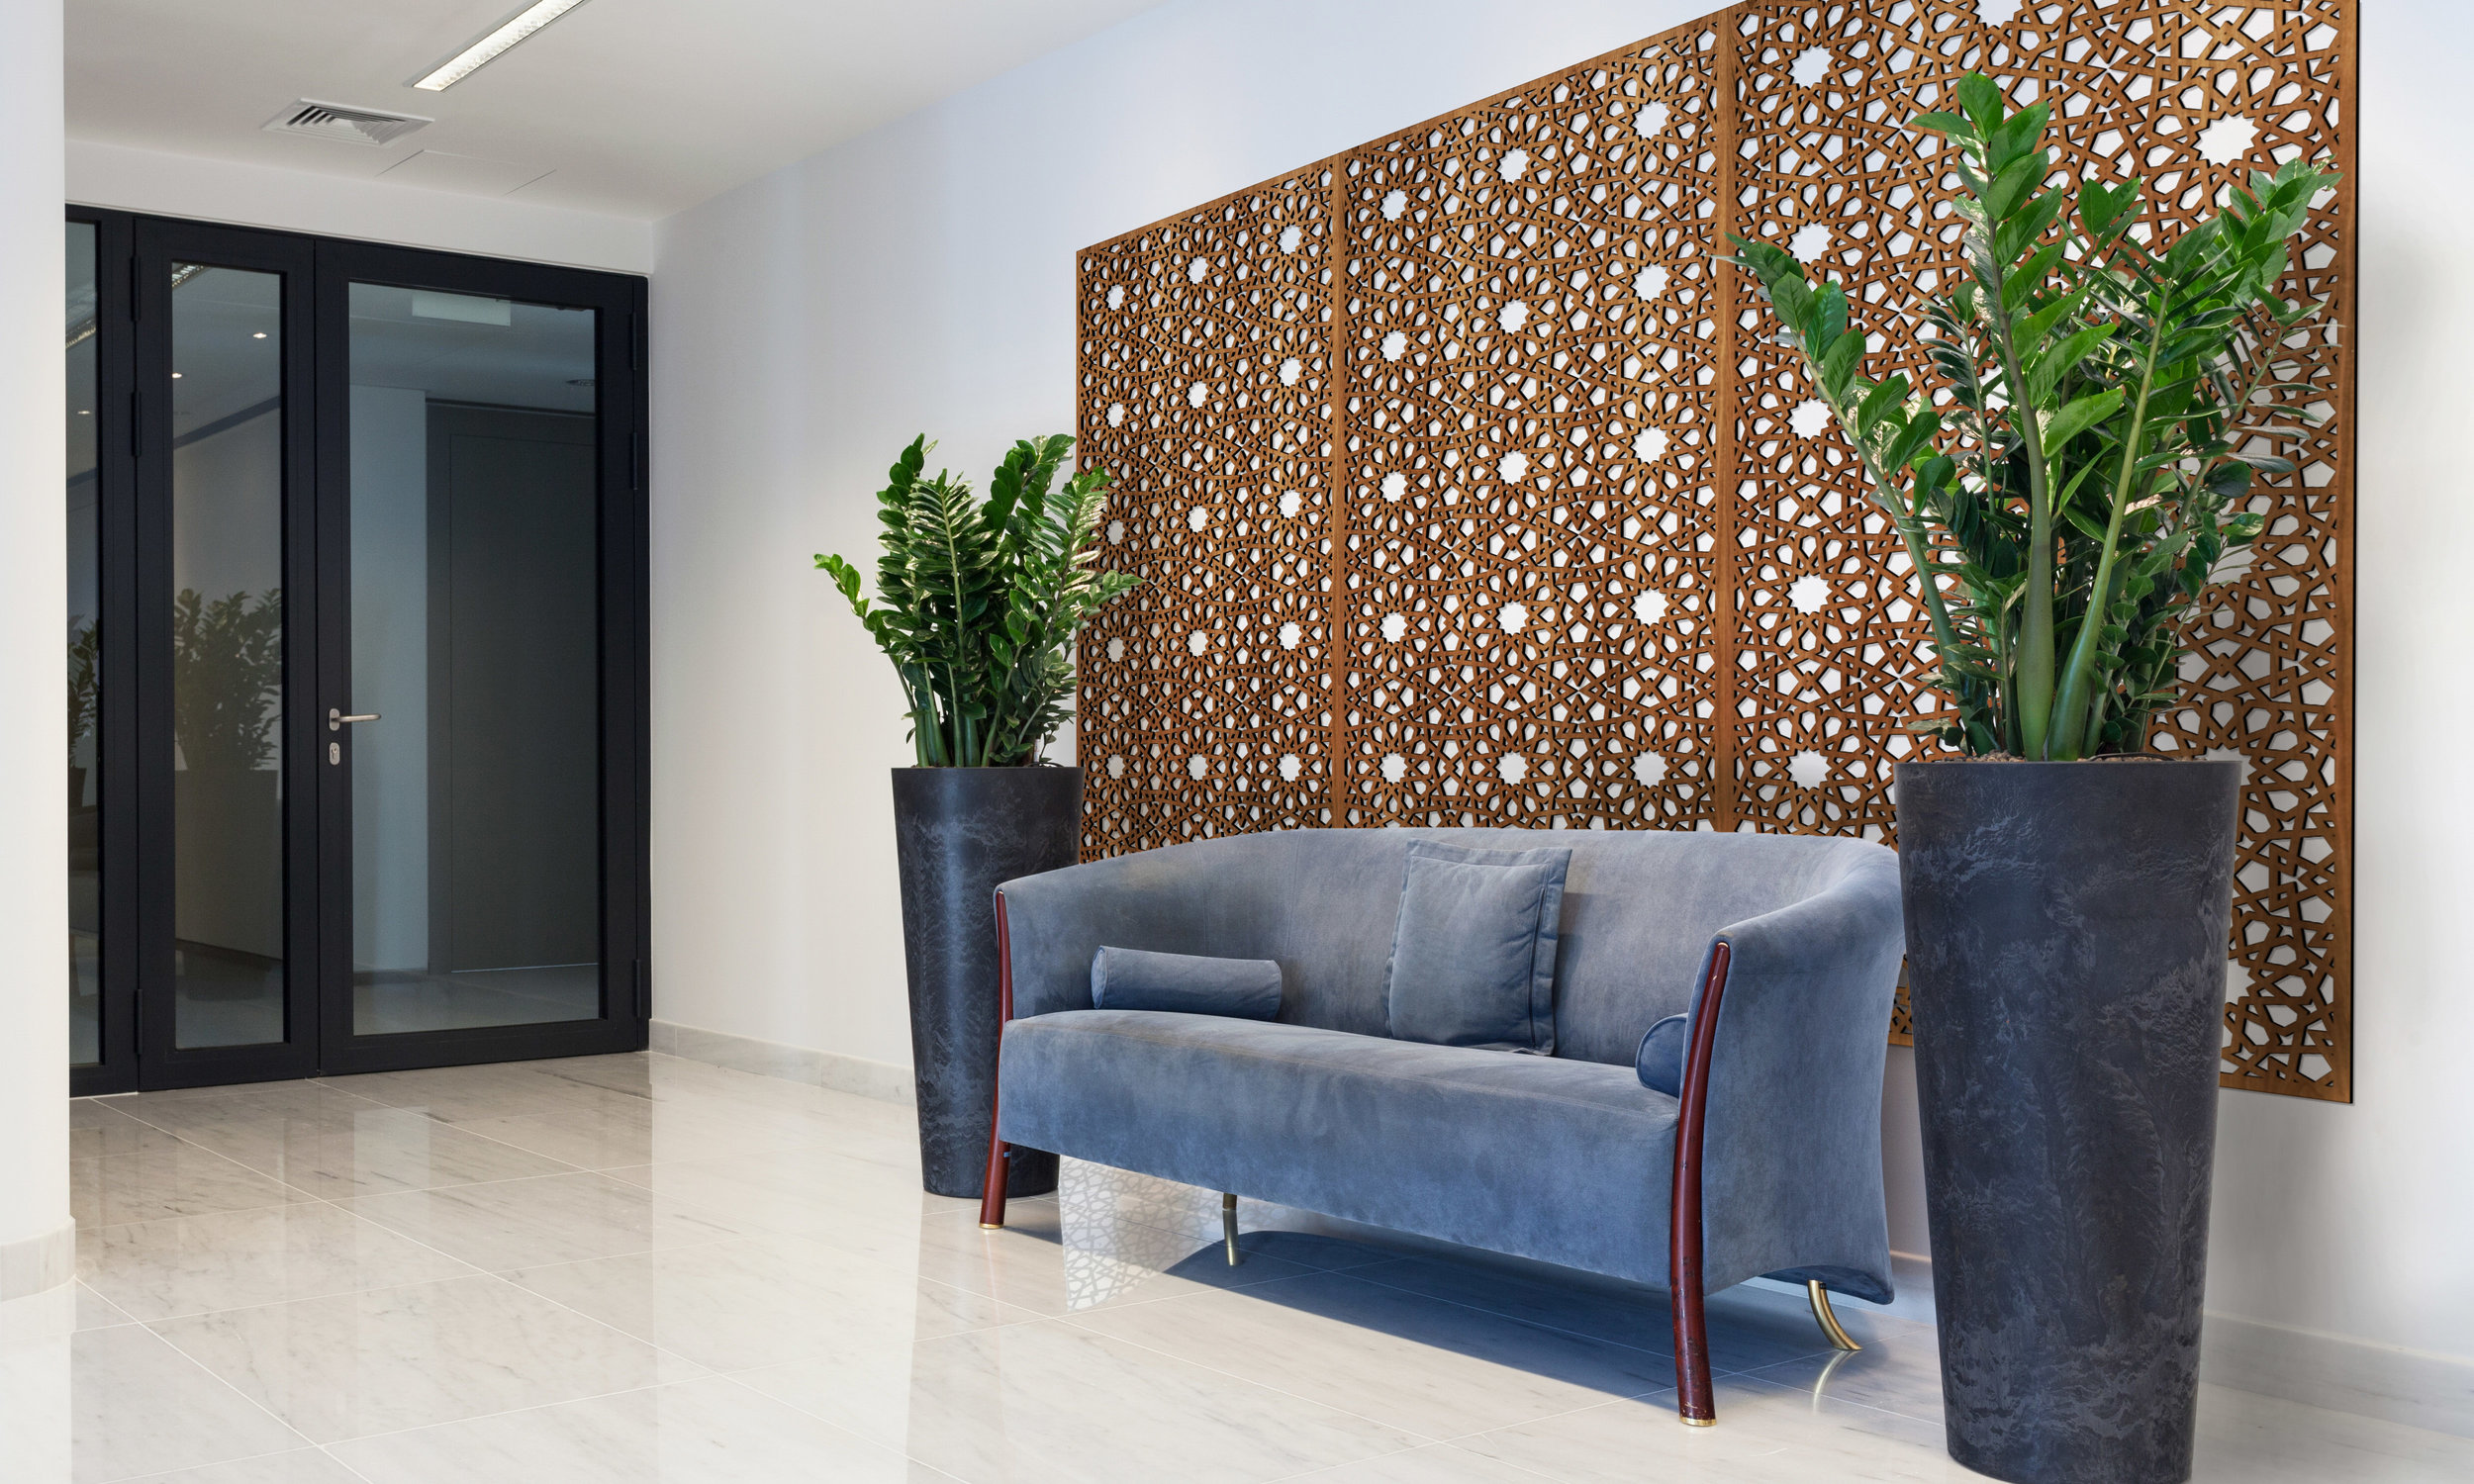 Installation Rendering A   Tunis decorative office wall panel - shown in cherry